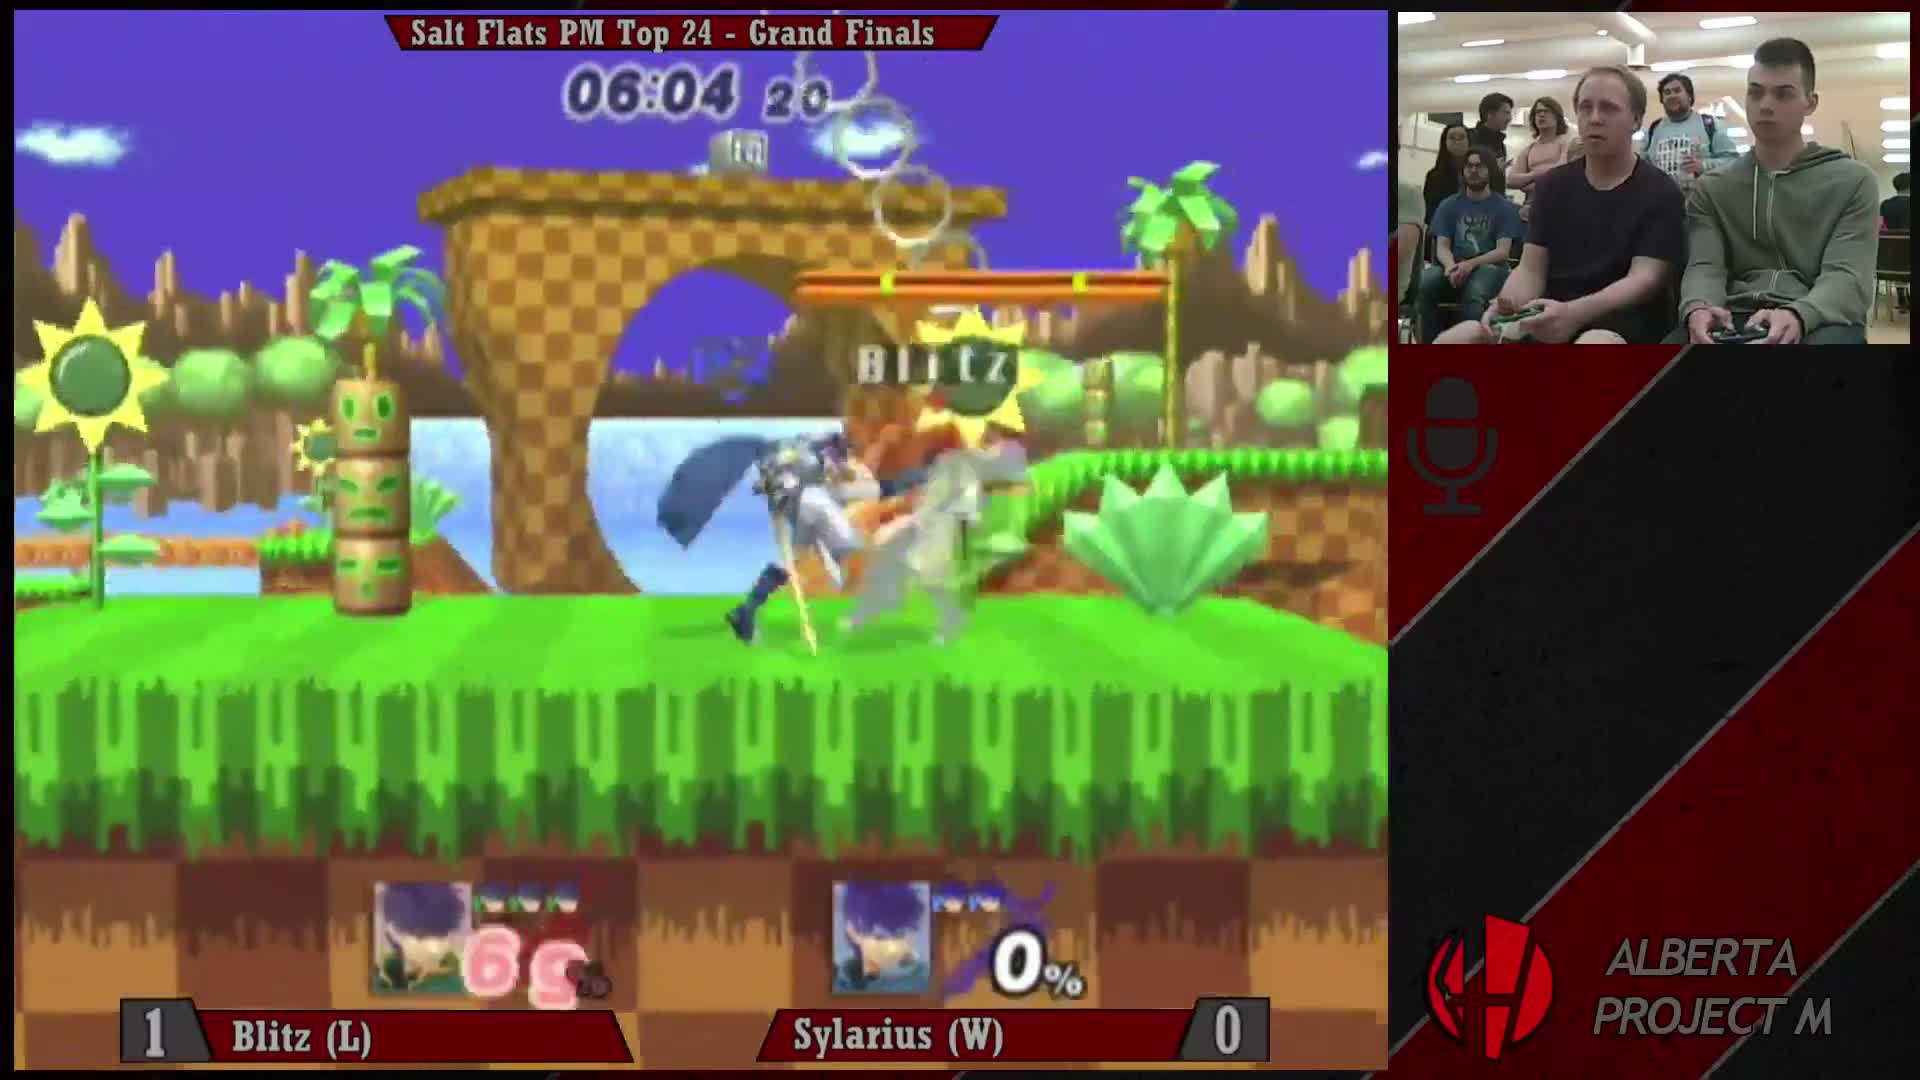 alberta, alphicans, bowser, calgary, edmonton, fox, melee, odds, project m, smash, Wall Jump Recovery - Salt Mines PM - Sylarius (Ike) vs Blitz (Ike) - Grands Finals GIFs